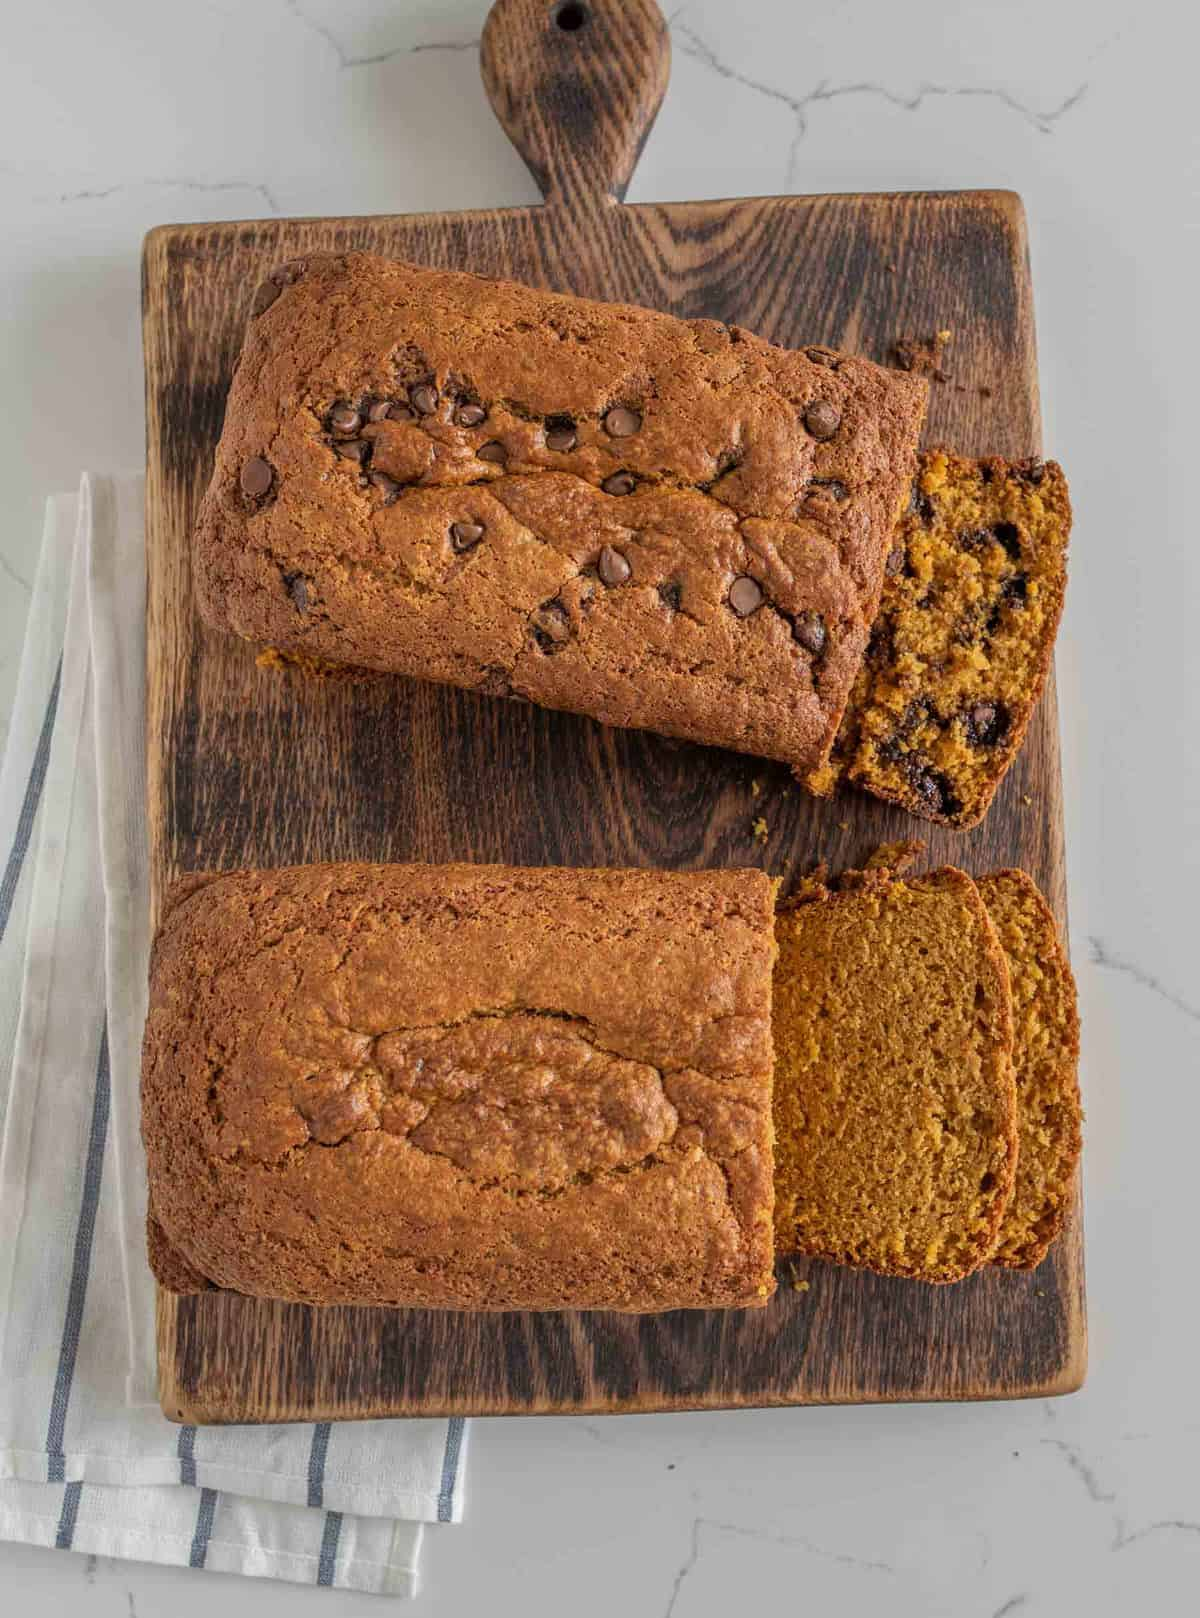 This is THE Perfect Pumpkin Bread recipe made with or without chocolate chips. It's sweet, moist, perfectly cooked and never gummy, you'll make it over and over again.